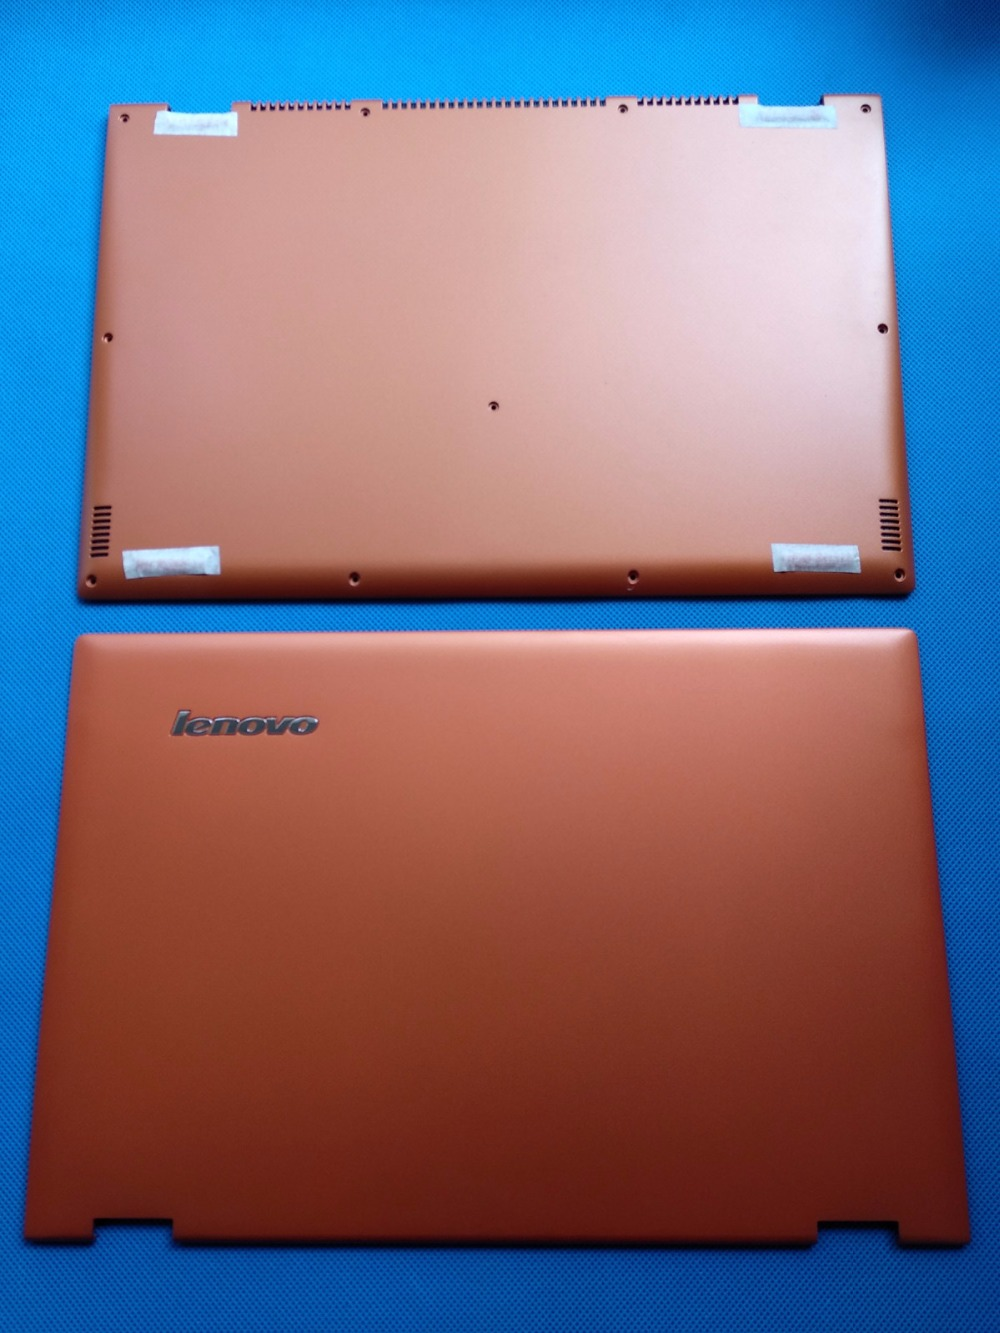 New Original Lenovo Ideapad Yoga 2 Pro 13 LCD Back Rear Lid Cover+ Base Cover Bottom Lower Case AM0S9000200 AM0S9000300 Orange new original for lenovo thinkpad x1 carbon 5th gen 5 back shell bottom case base cover 01lv461 sm10n01545